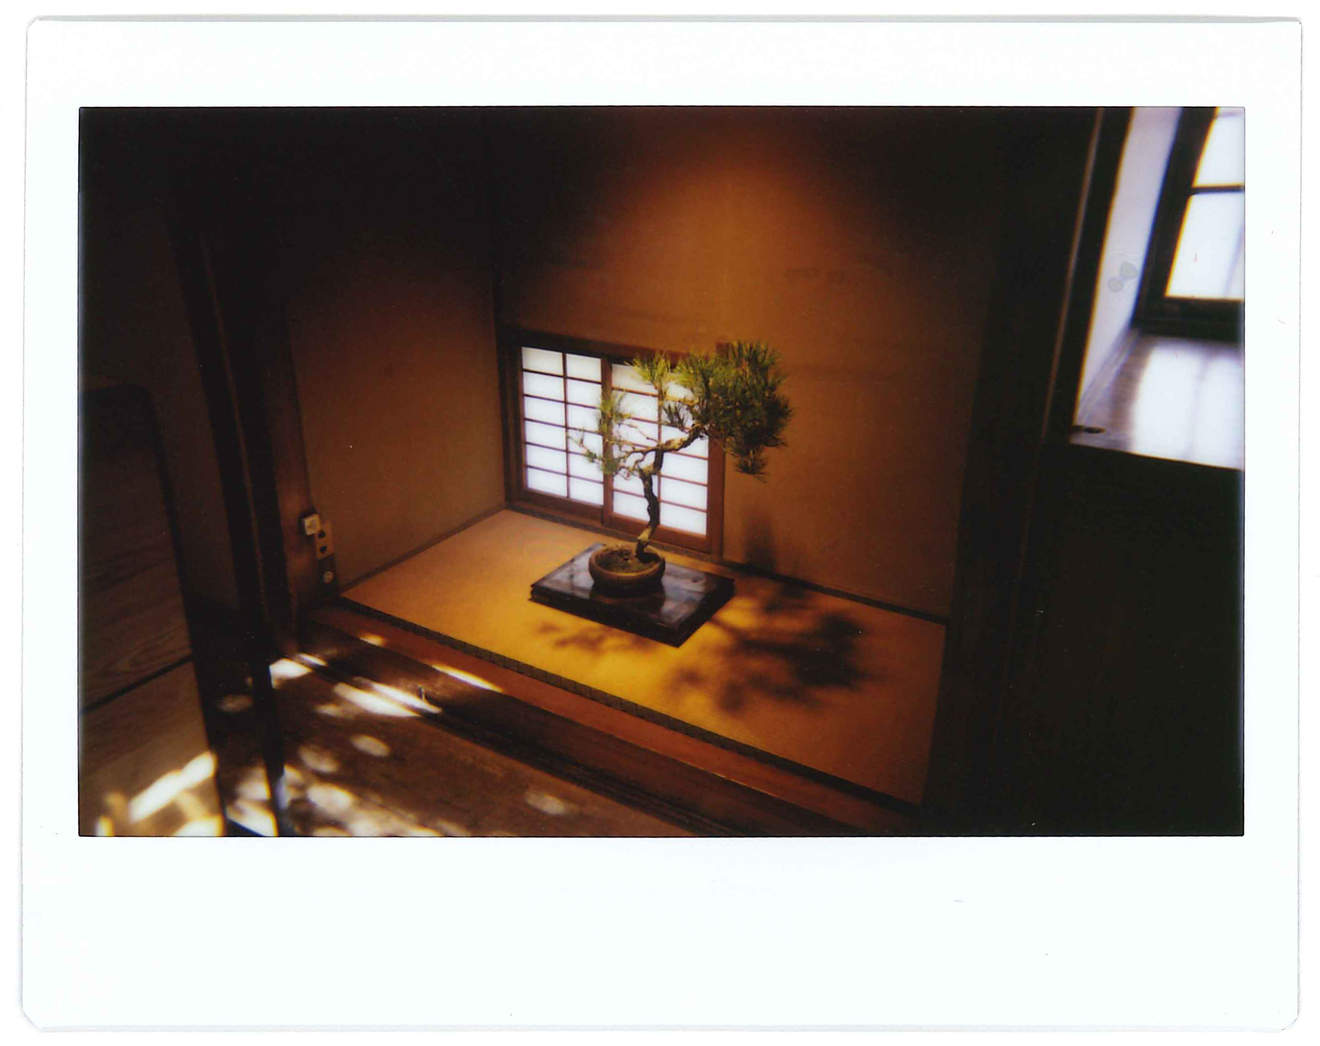 """Instant photo for Day 68 of """"A Year in an Instant"""" by Nuno Coelho Santos"""